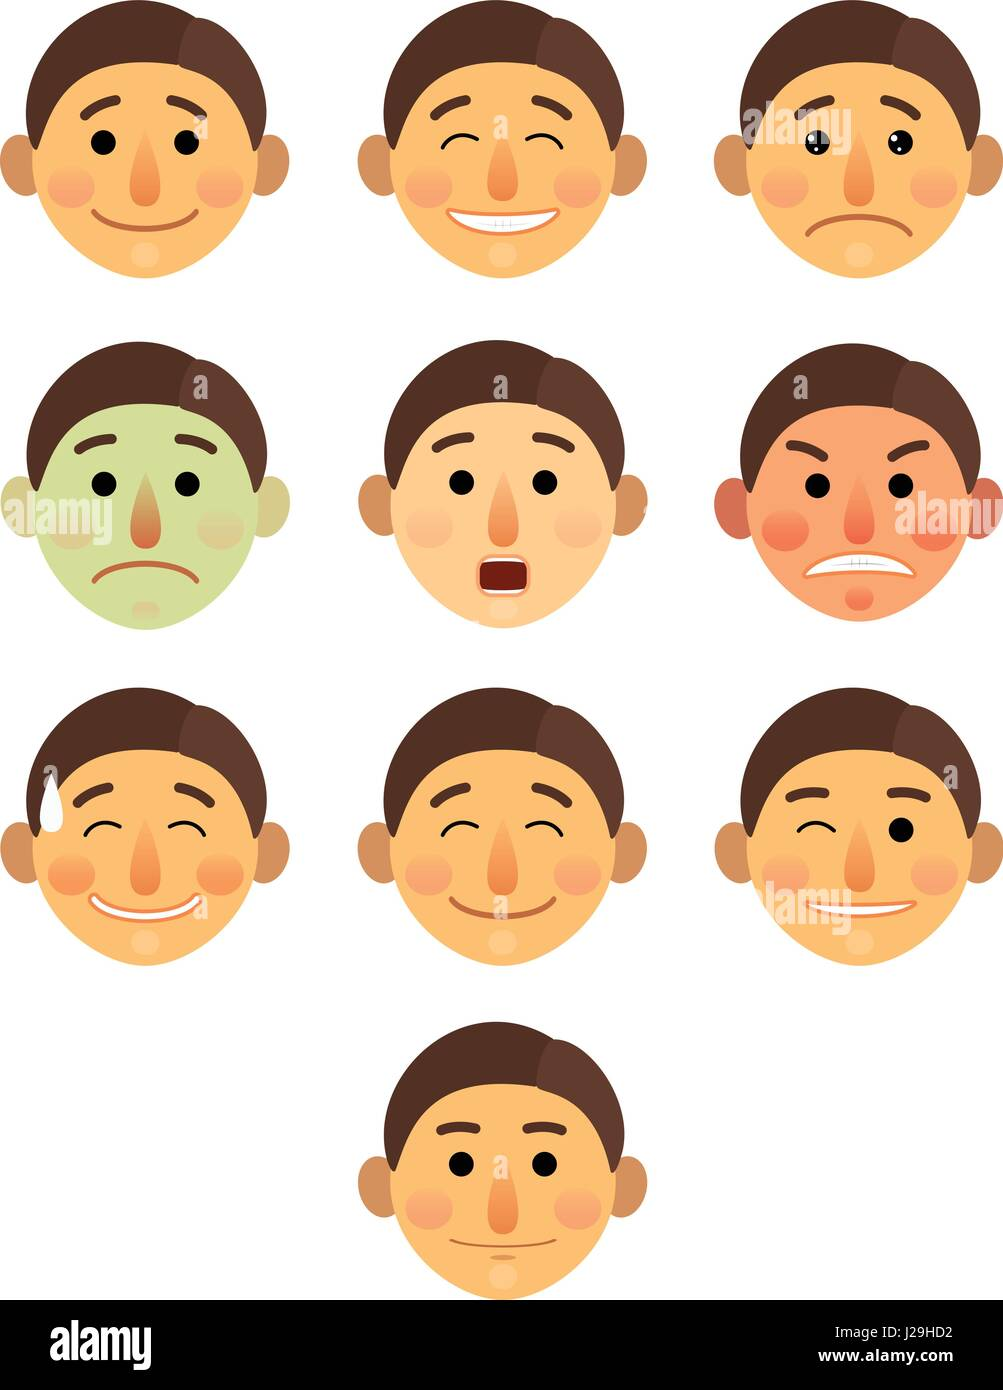 boy or man different face emotions collection cartoon flat - Emoji emoticon icon vector illustration set. Face on - Stock Image